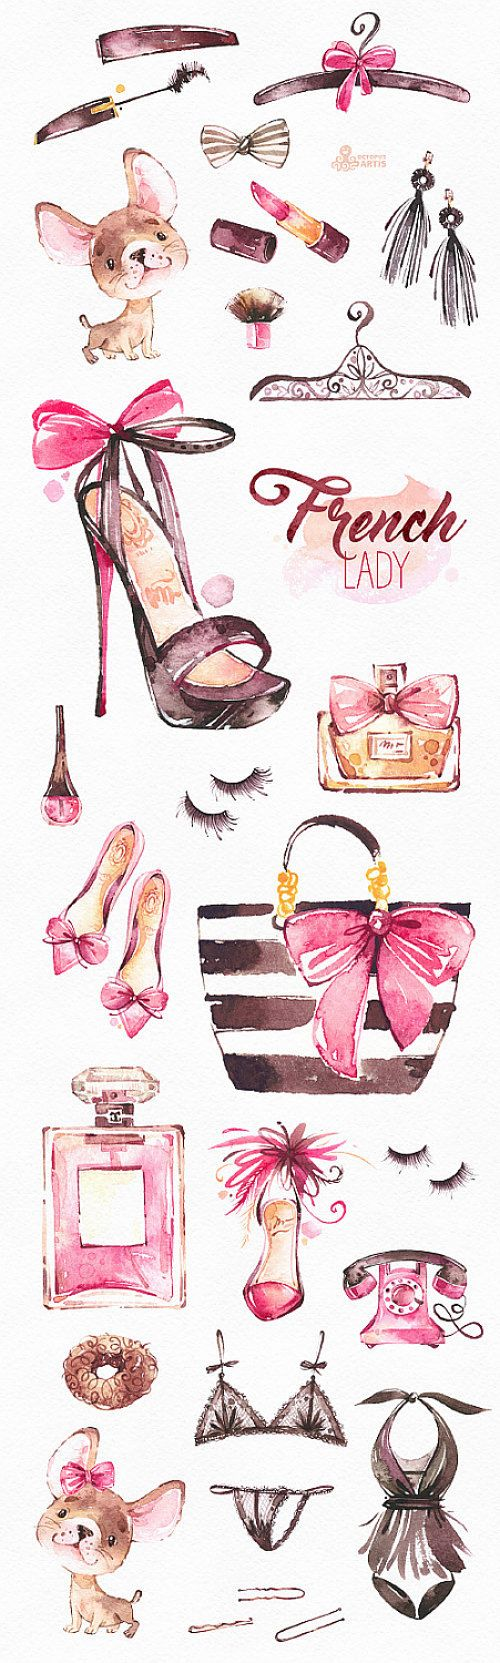 This is an fashion french collection includes 30 handpainted watercolor images. Perfect graphic for fashion projects, brand identity, invitations, cards, logos, photos, posters, wallarts, quotes, diy and more. ----------------------------------------------------------------- INSTANT DOWNLOAD Once payment is cleared, you can download your files directly from your Etsy account. ----------------------------------------------------------------- This listing includes: 30 x Different Graphic ...